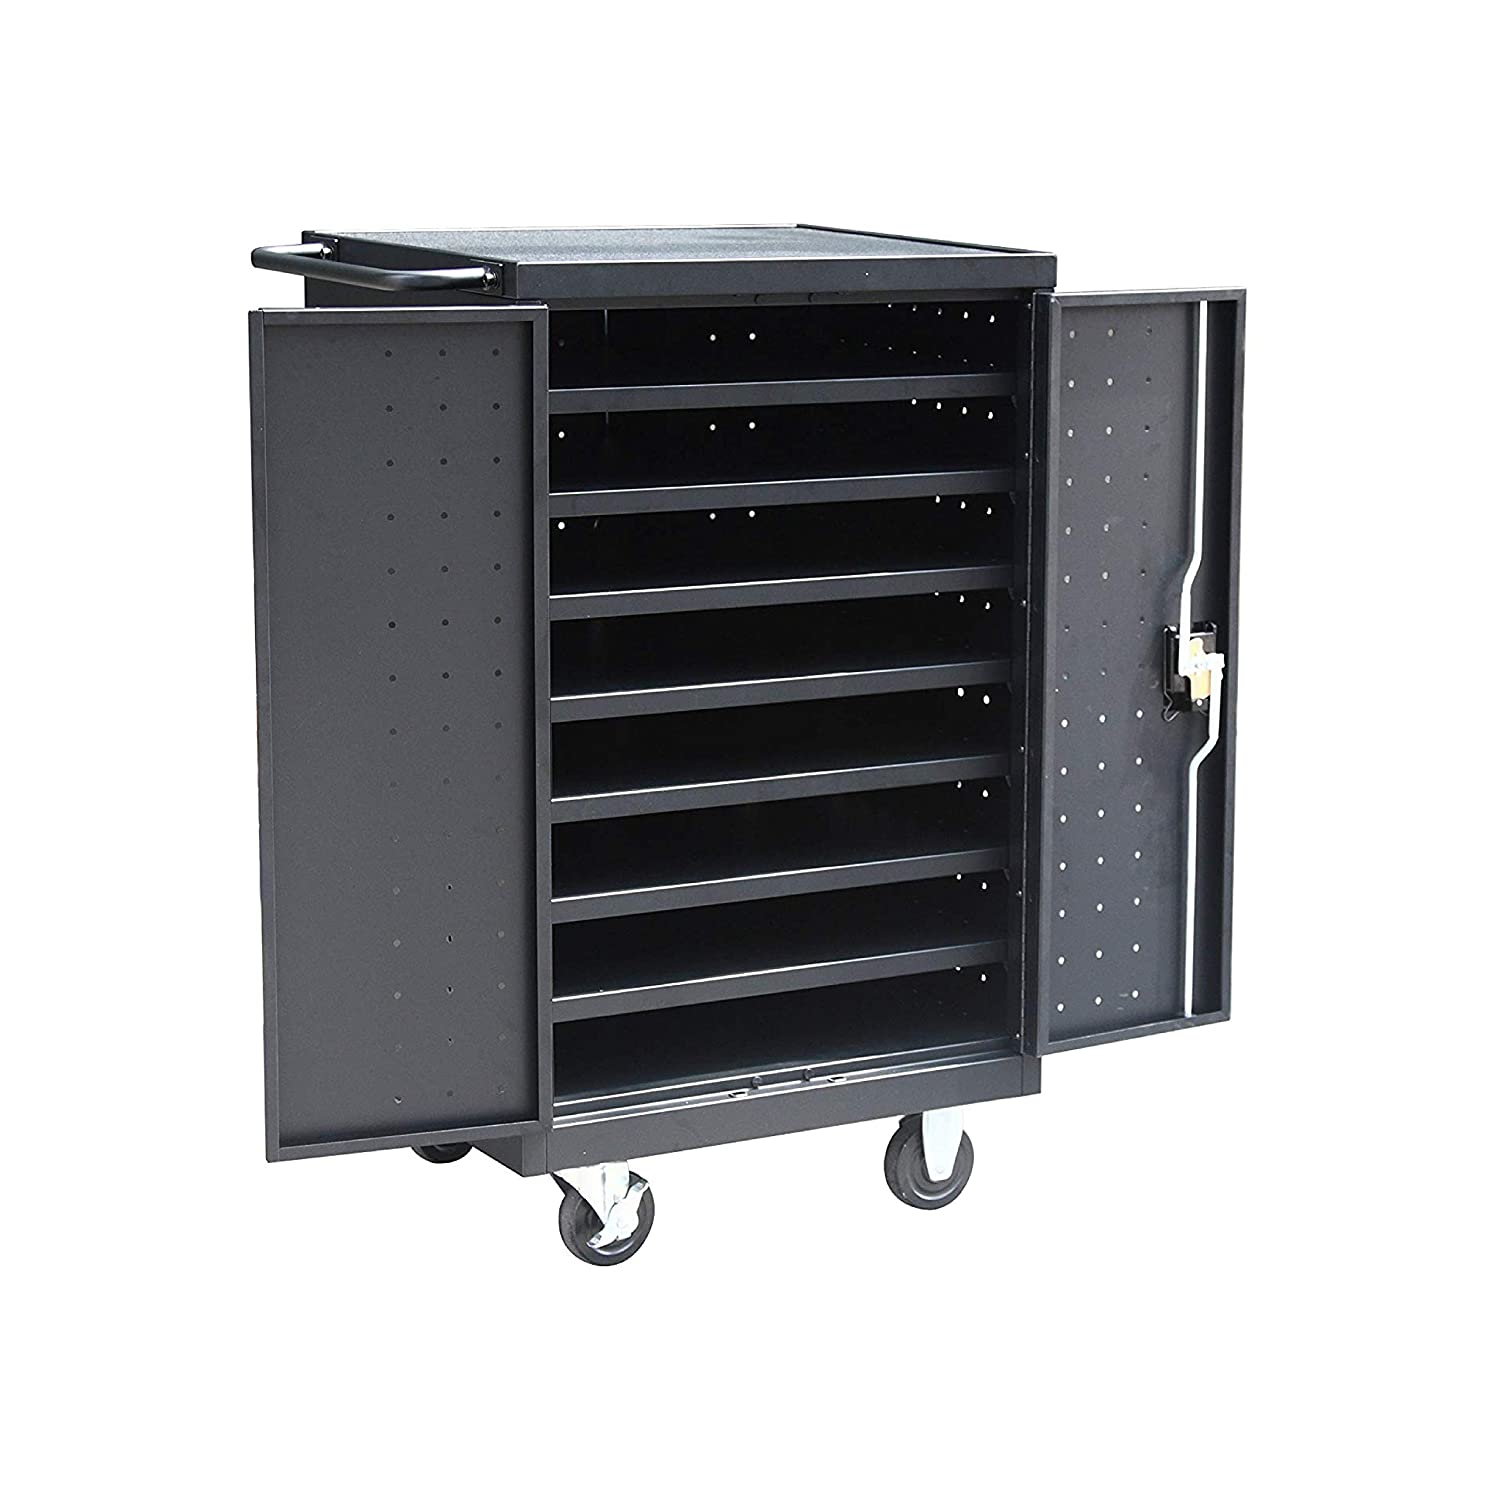 Pearington 12-Device Mobile Charging and Storage Cart for iPads, Tablets and Laptops Computers, Up to 16-inch Screen Size, Surge Protection, Front & Back Access Locking Cabinet, Black